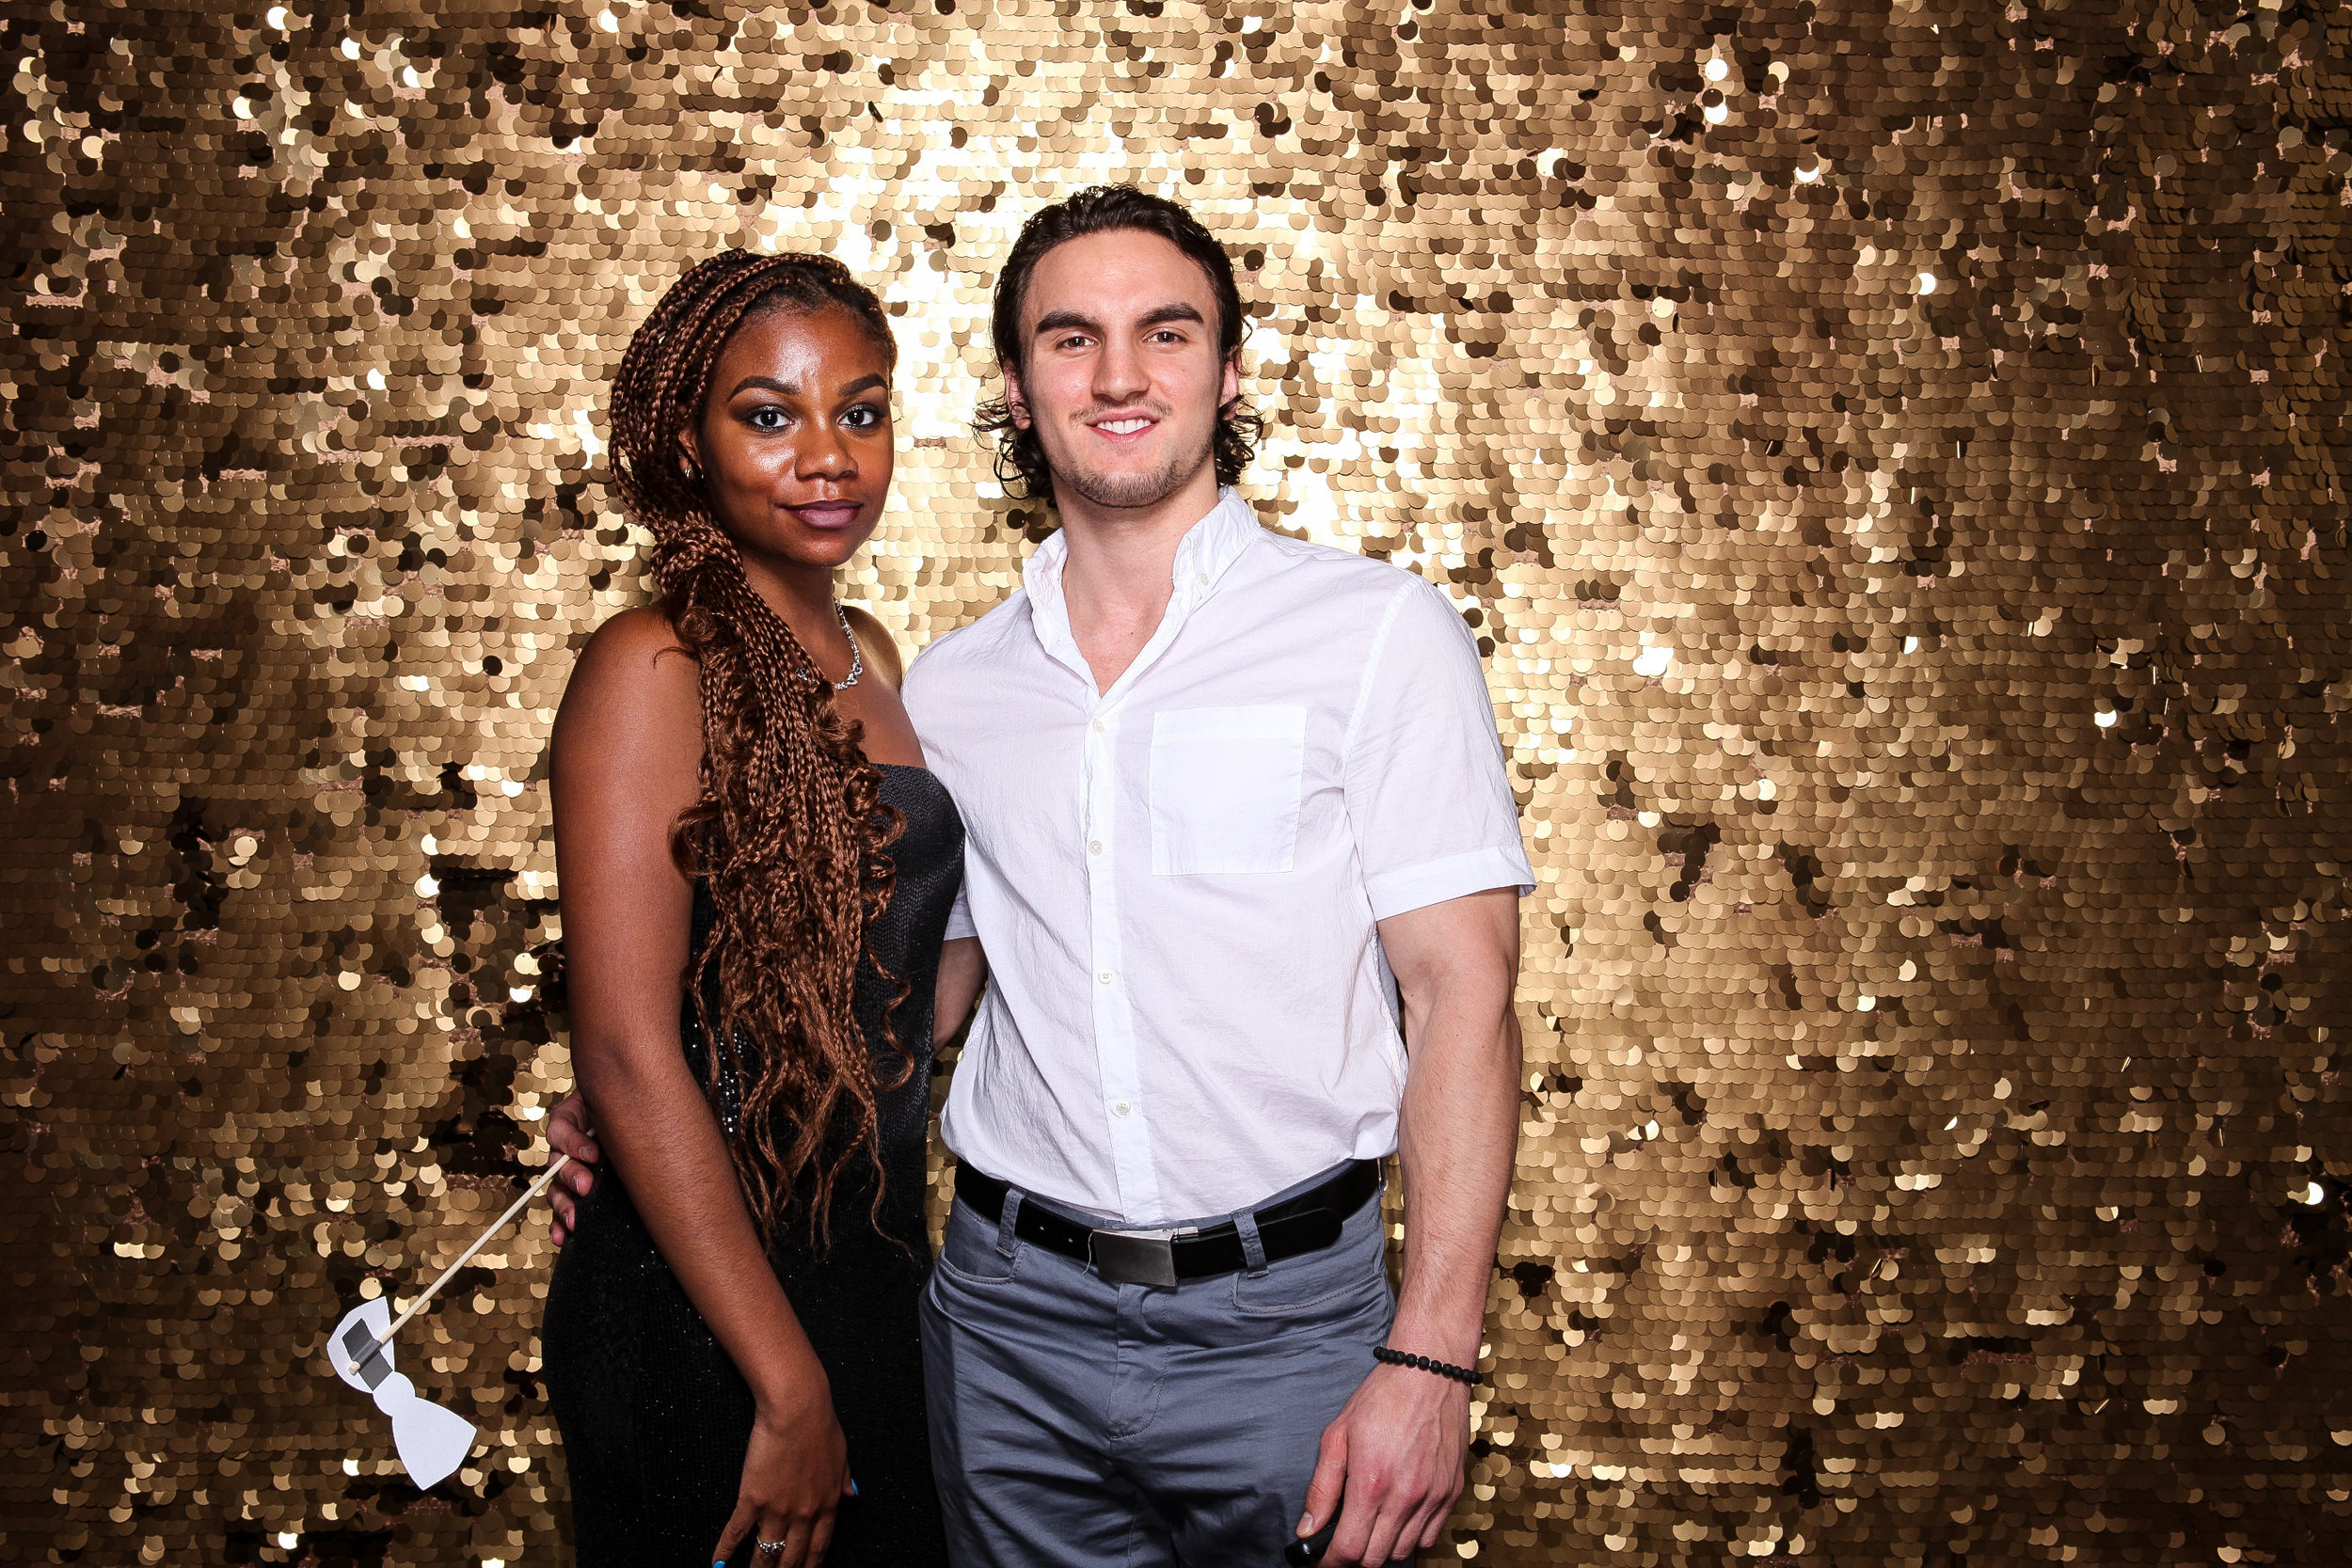 20190503_Adelphi_Senior_Formal-103.jpg